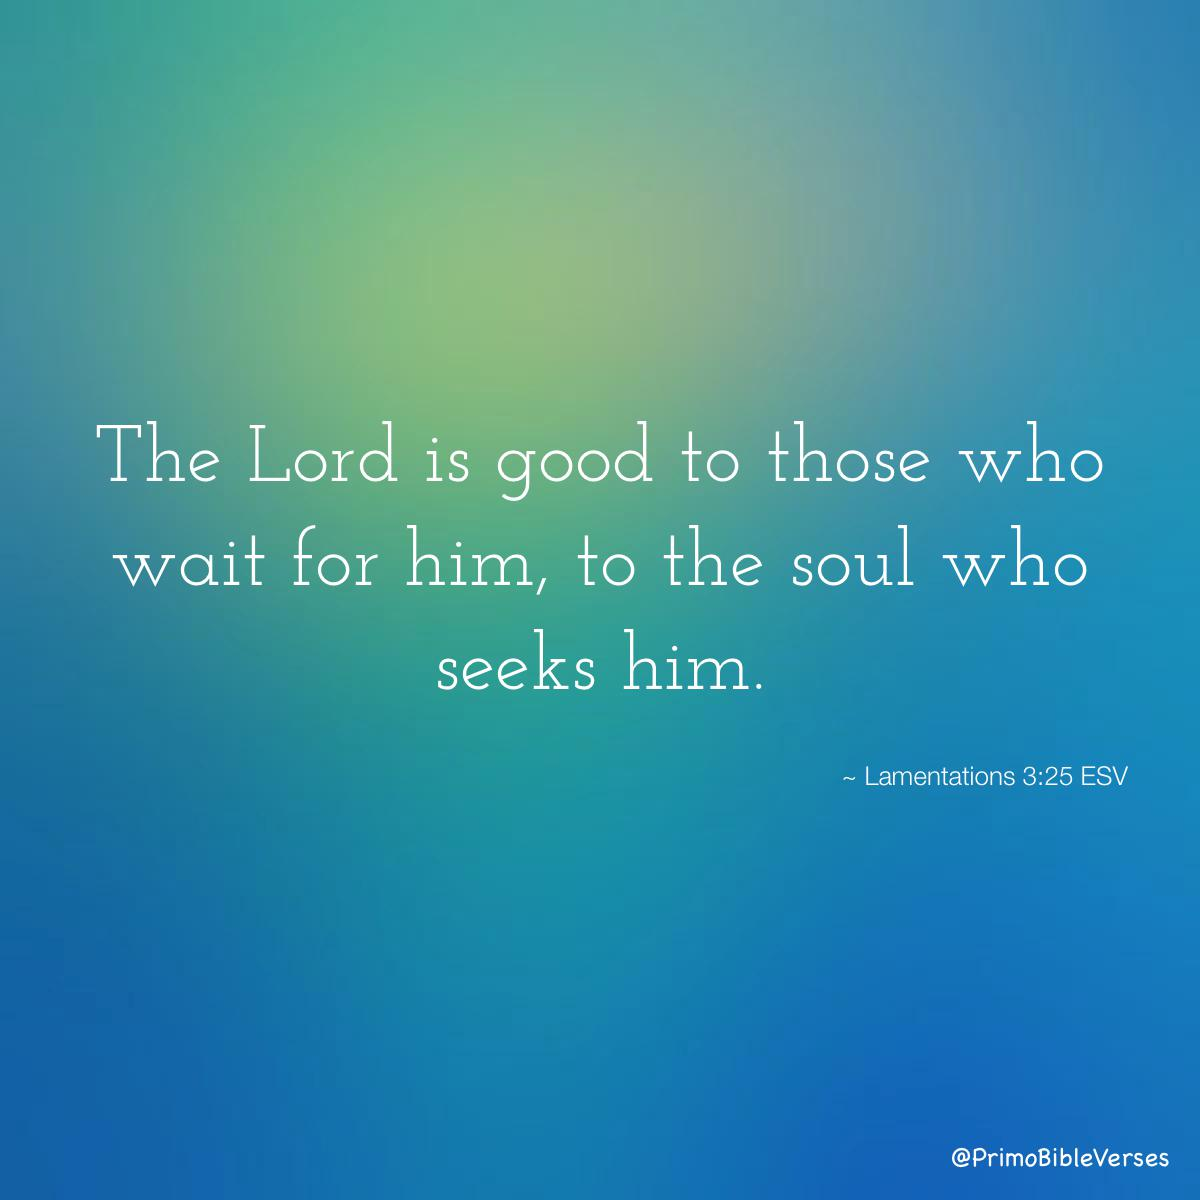 the-lord-is-good-to-those-who-wait-for-him-to-the-soul-who-seeks-him-esv13627.jpg